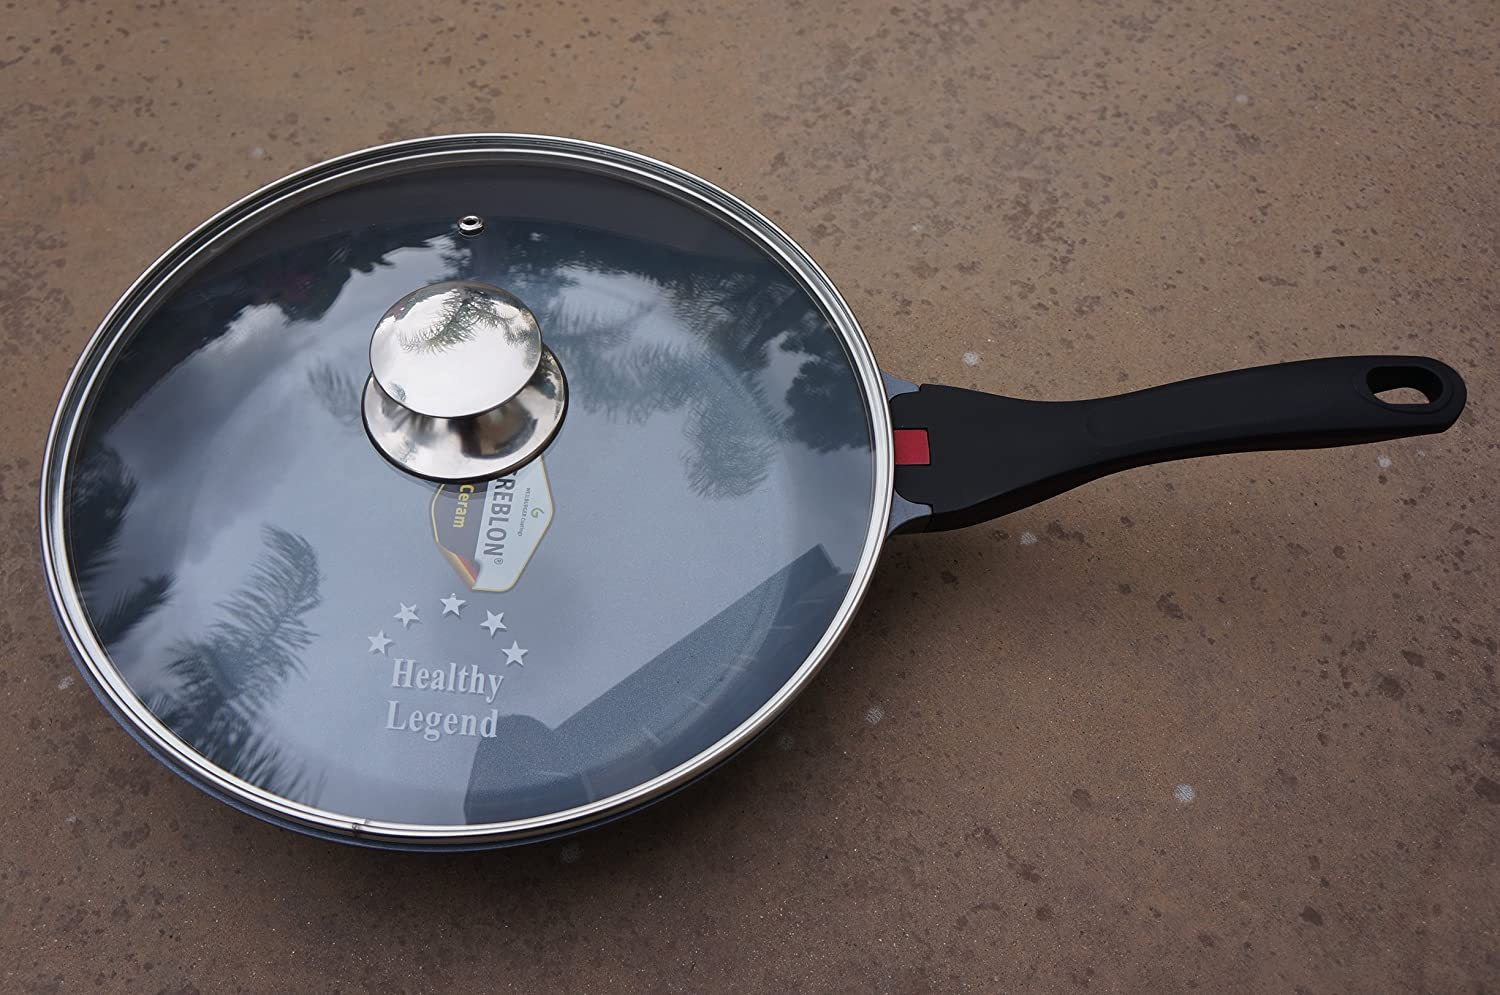 New Healthy Legend 11.2  (28cm) Fry Pan with Non-stick German Weilburger Ceramic Coating - Temperature Indicator, Induction Ready, ECO Friendly Non-toxic Cookware